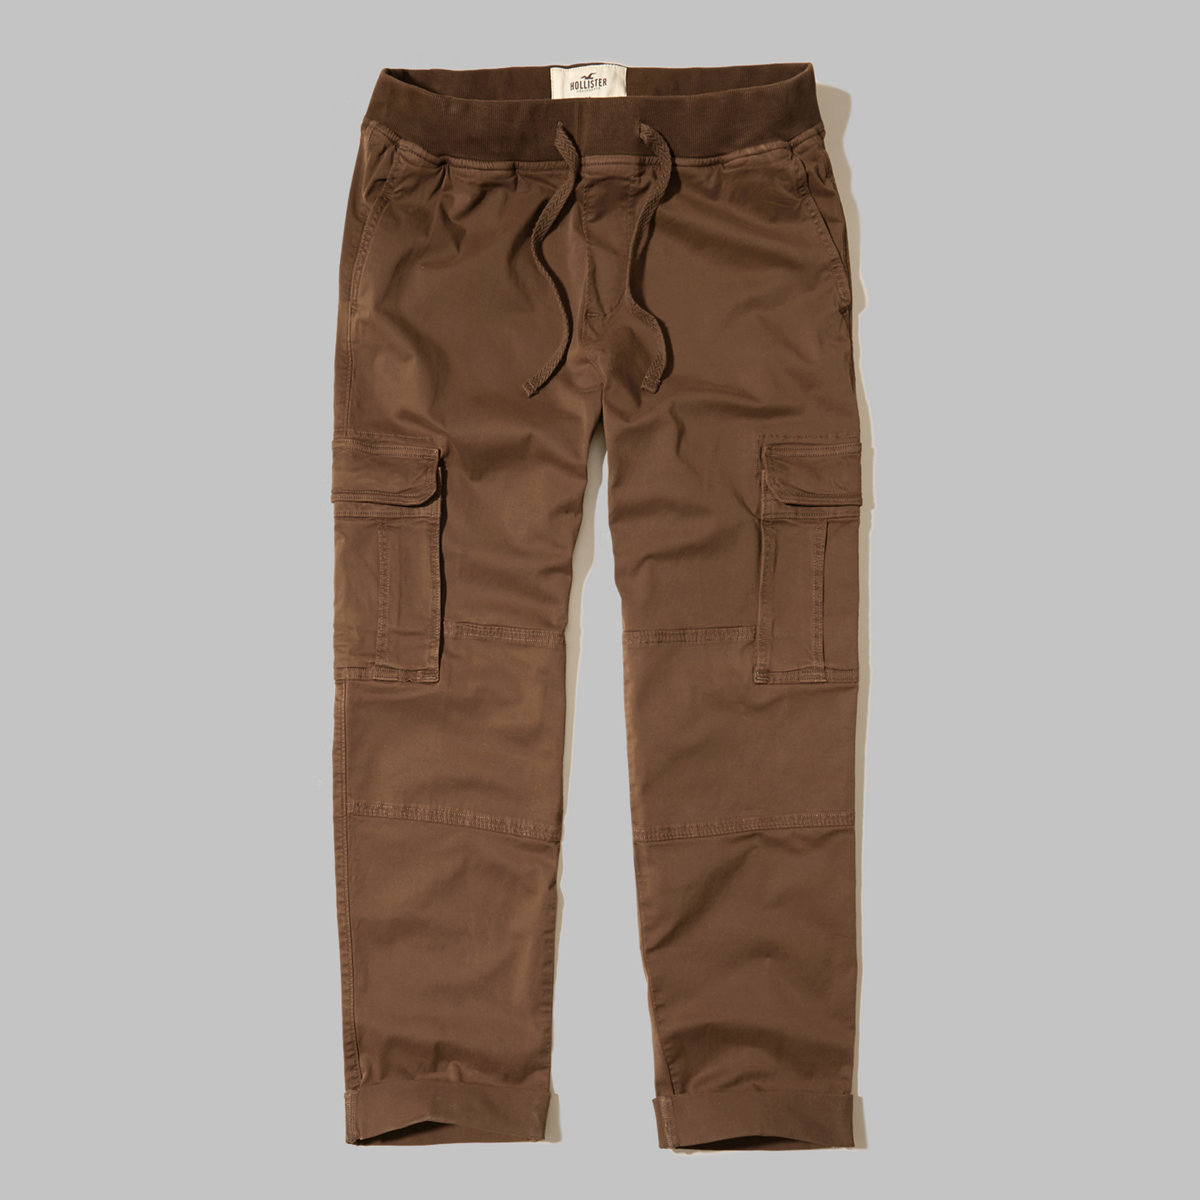 Hollister Pull-On Twill Cargo Pants